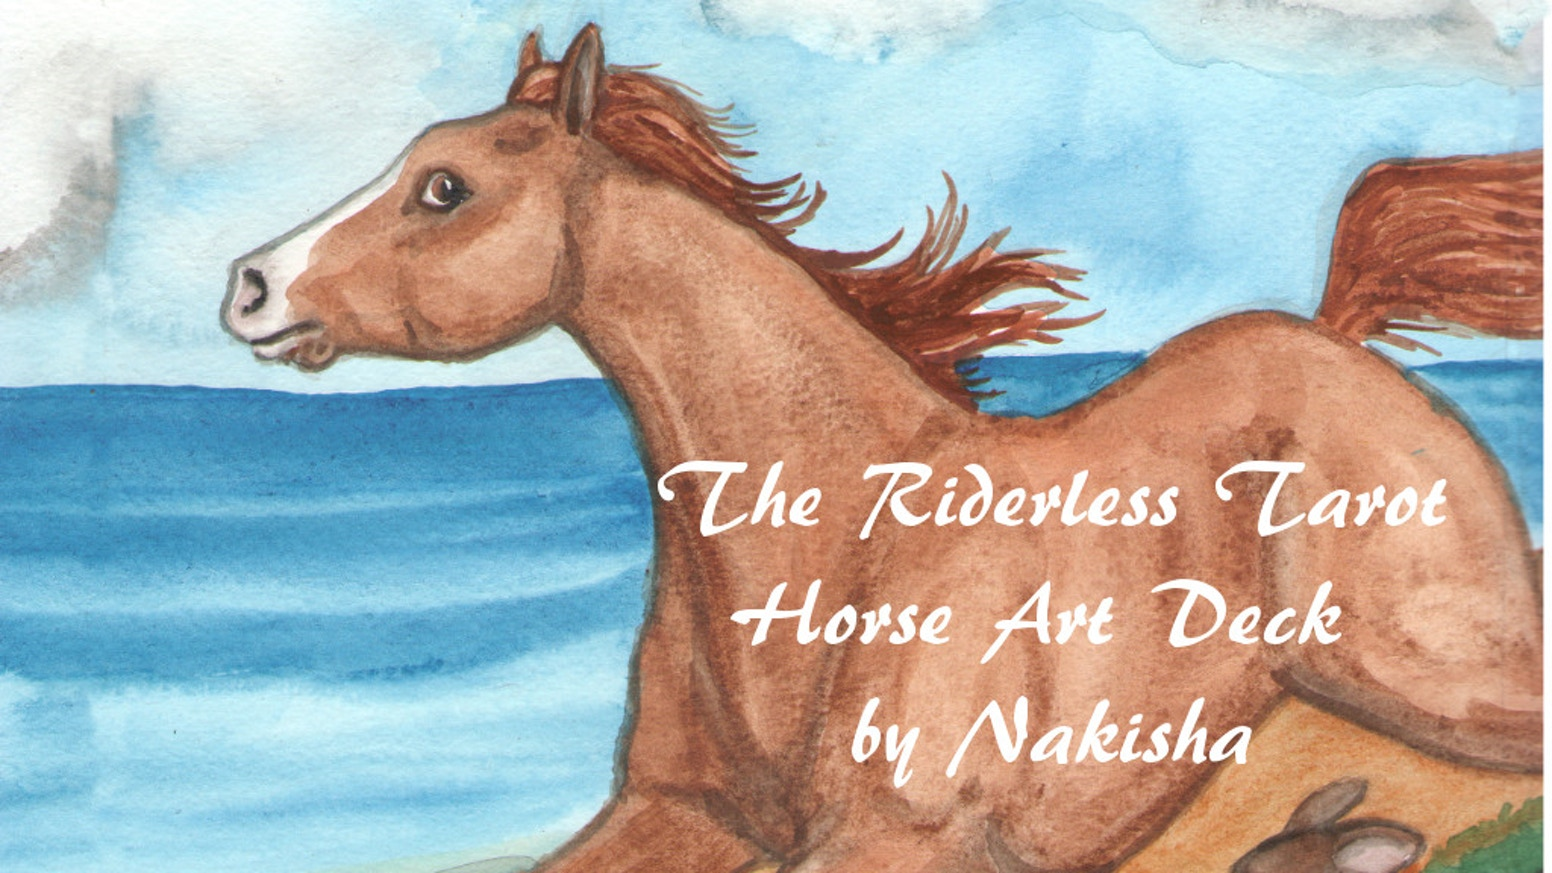 A New Tarot deck featuring Horses by the creator of the Rabbit Tarot.